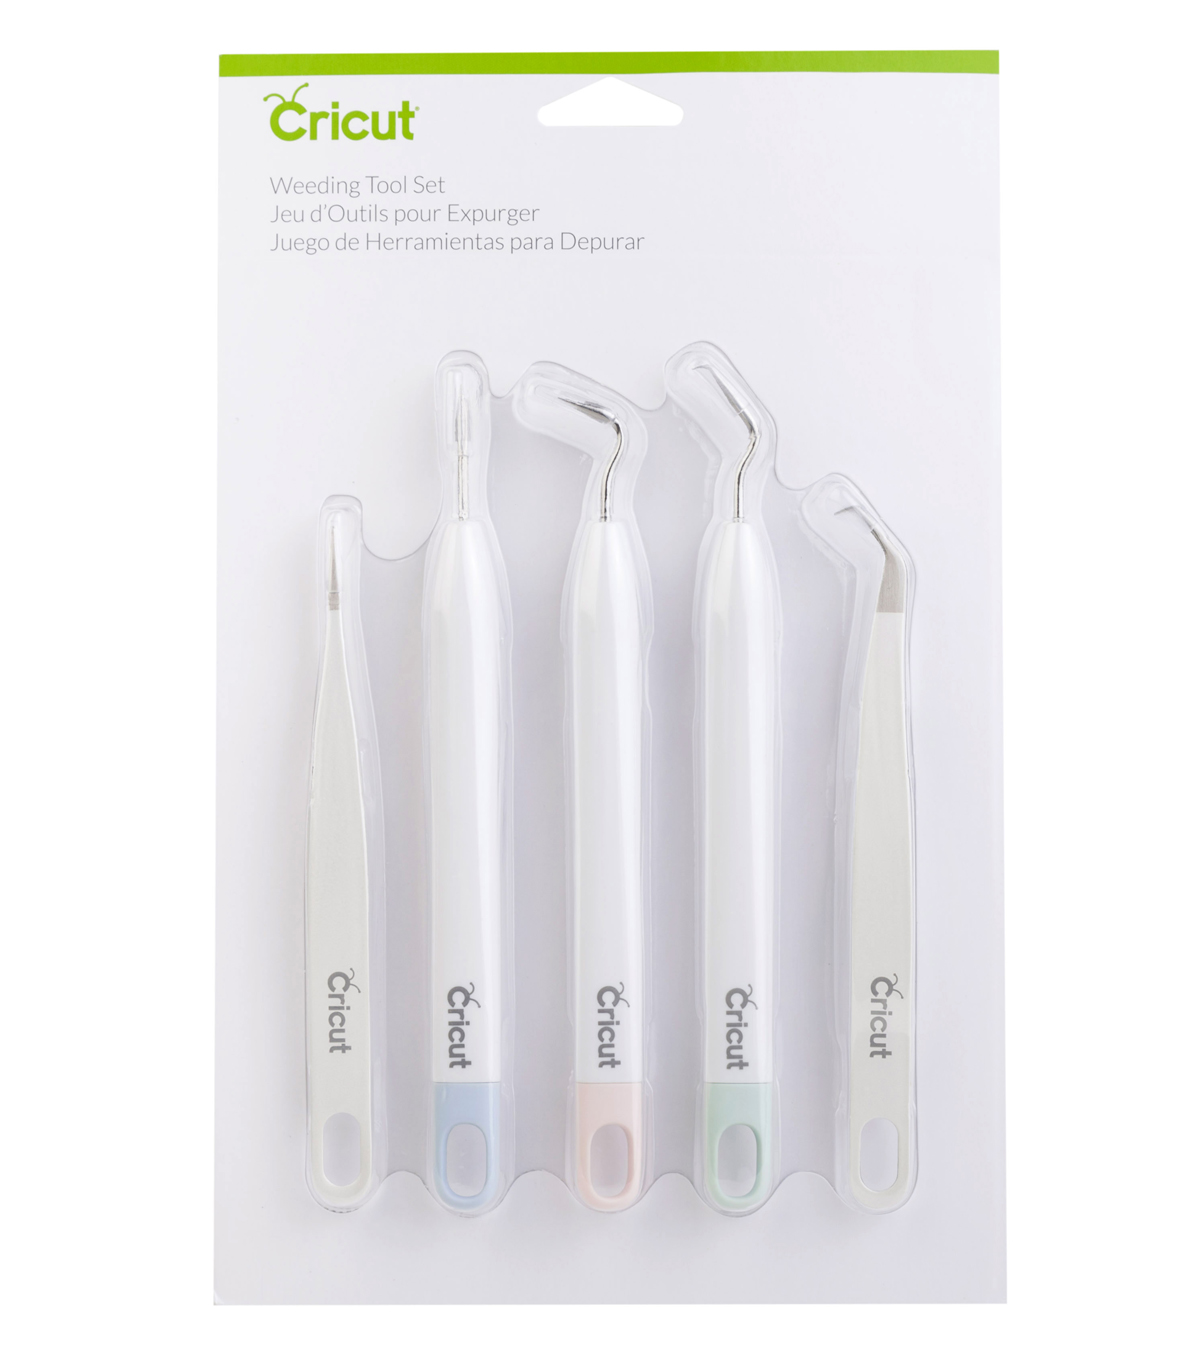 Cricut Weeding Tool Set Rock Rose Designs Rock Rose Designs